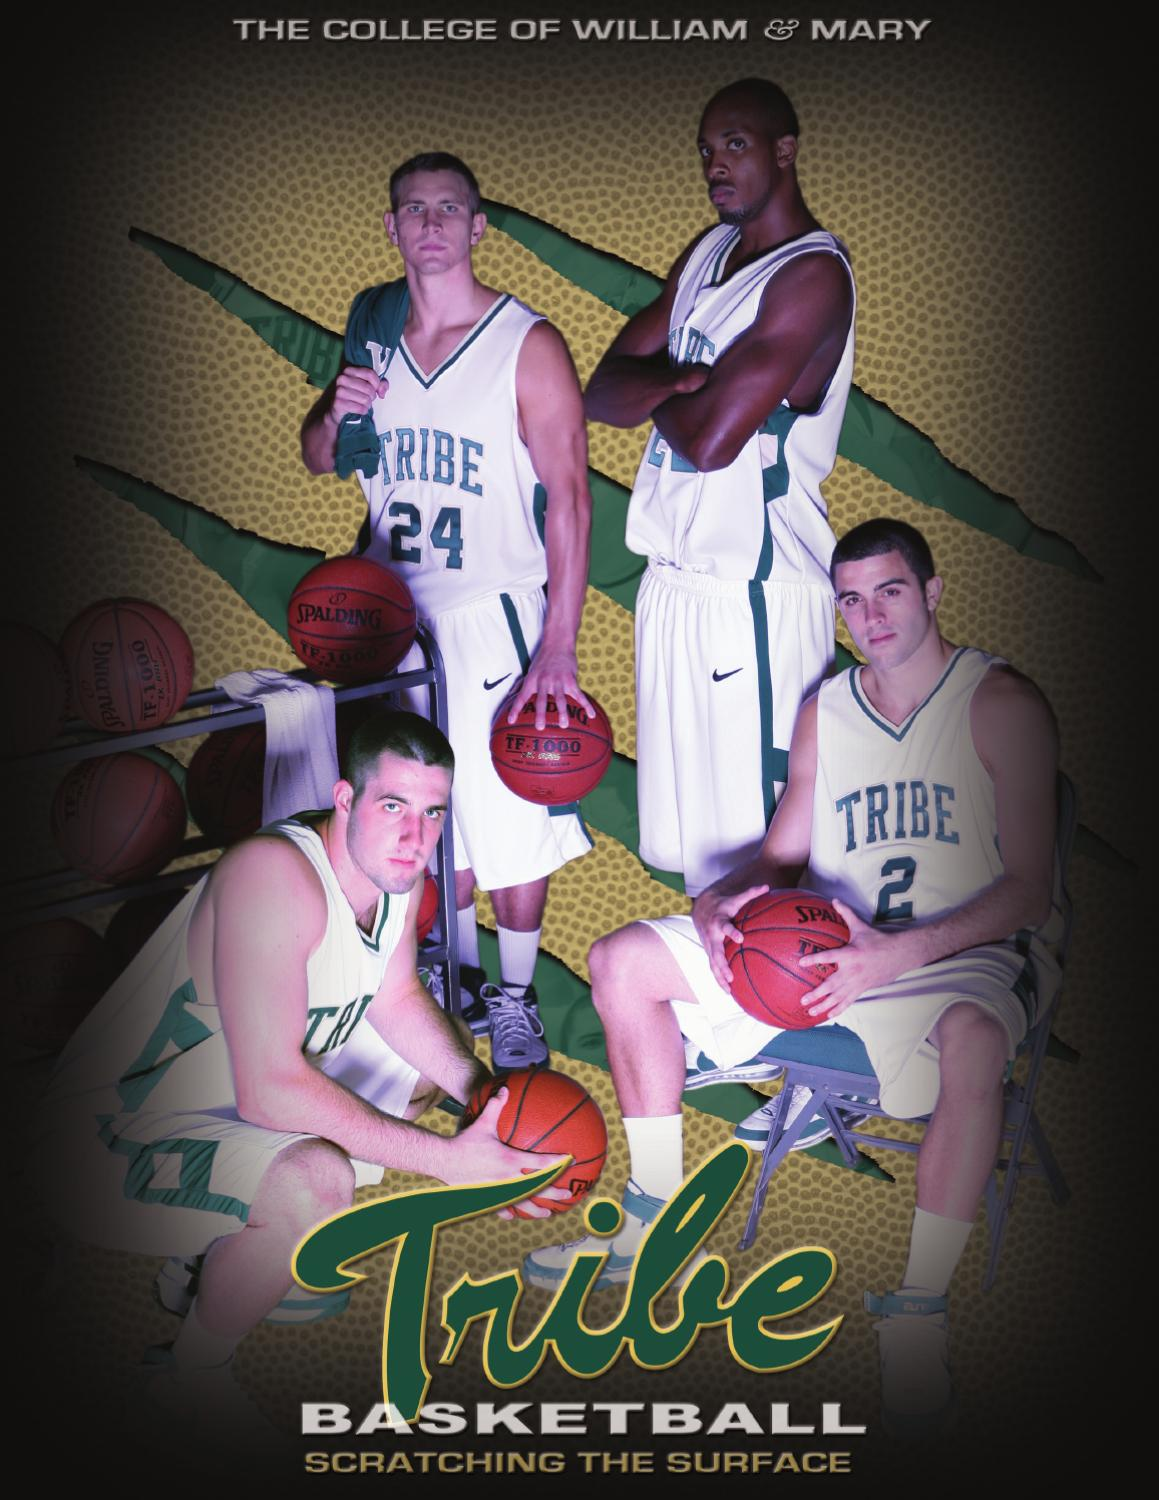 8716e6cdc5b6 2009-10 Tribe Men s Basketball Media Guide by College of William and Mary -  issuu